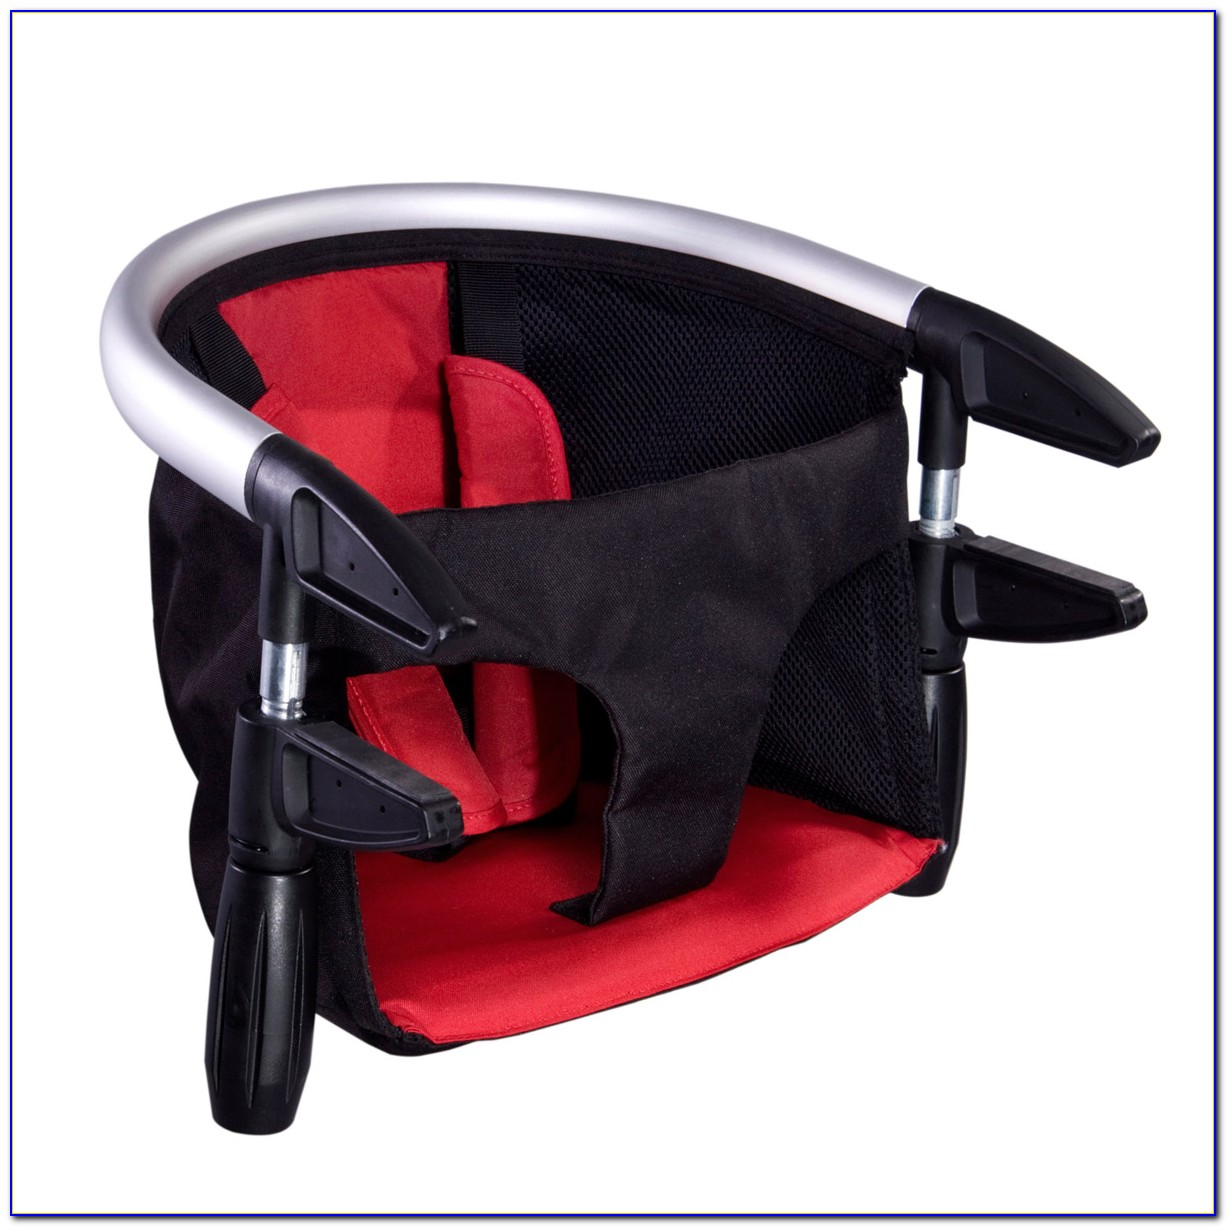 Portable High Chair Seat Target